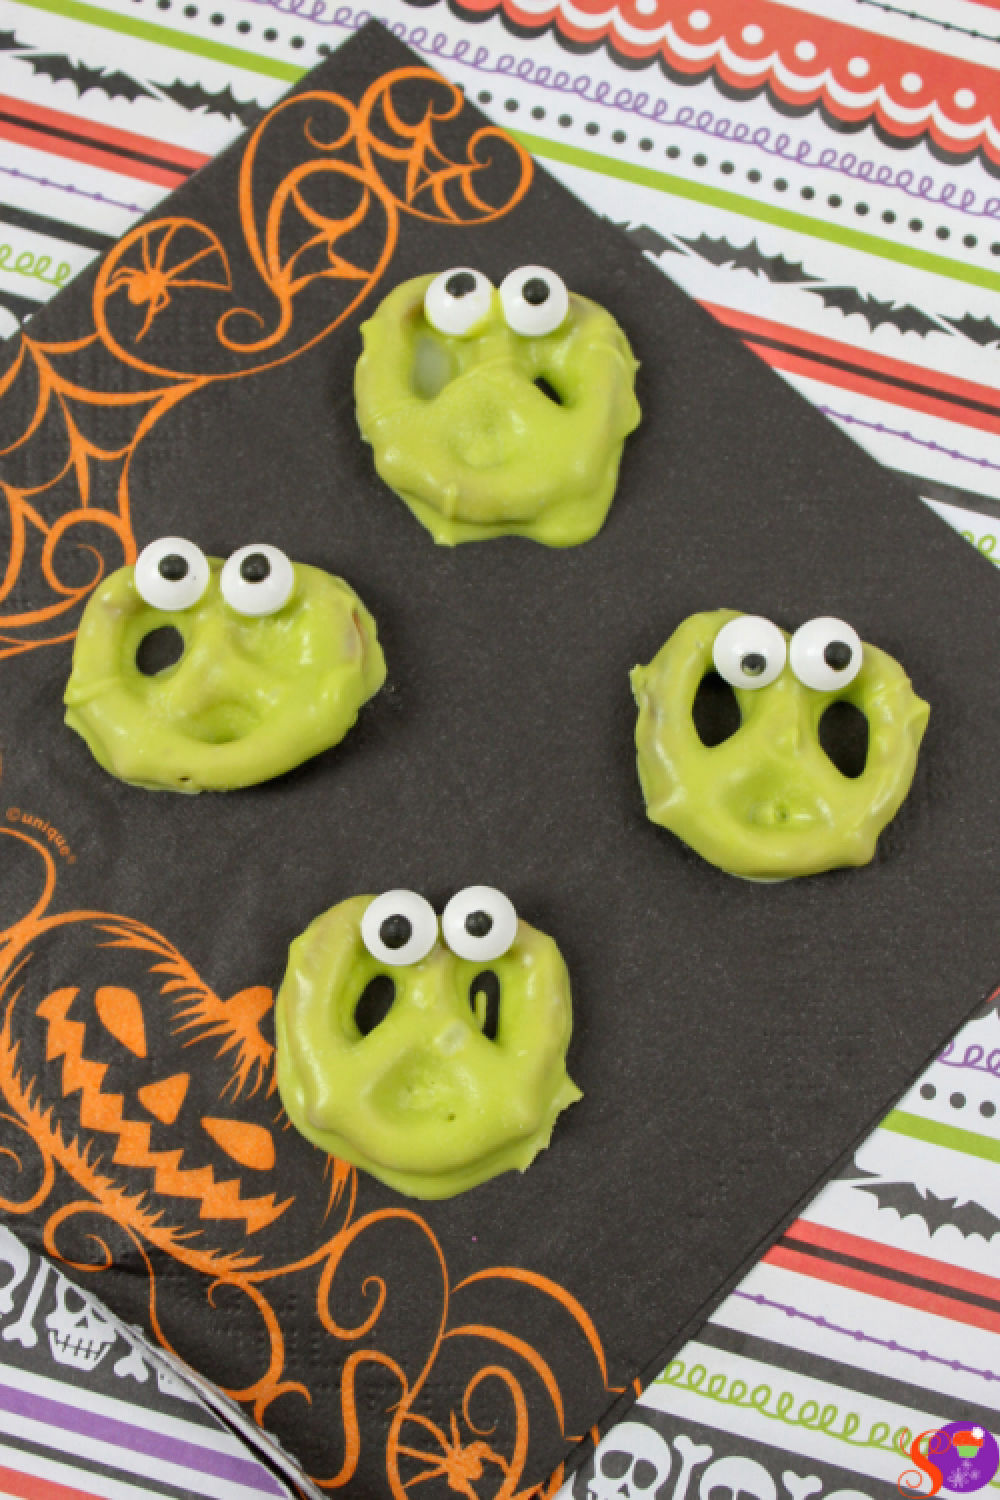 Silly Monster Pretzels are an easy Halloween treat recipe that's so easy, even the kids can help! #sweetandsavorymorsels #Halloween